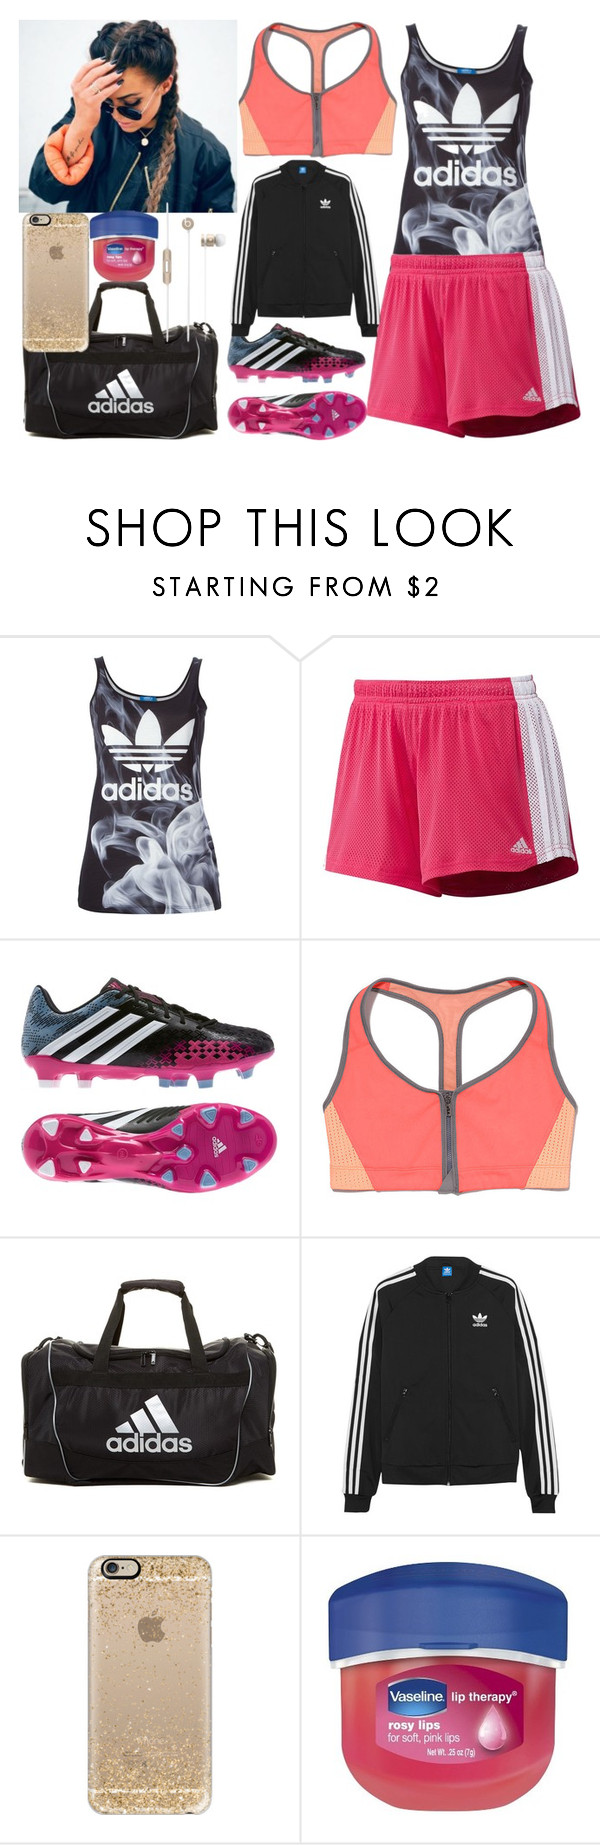 """""""Untitled #3145"""" by nicole-briffa ❤ liked on Polyvore featuring adidas Originals, adidas, Victoria's Secret, Casetify, Therapy, Beats by Dr. Dre, women's clothing, women's fashion, women and female"""